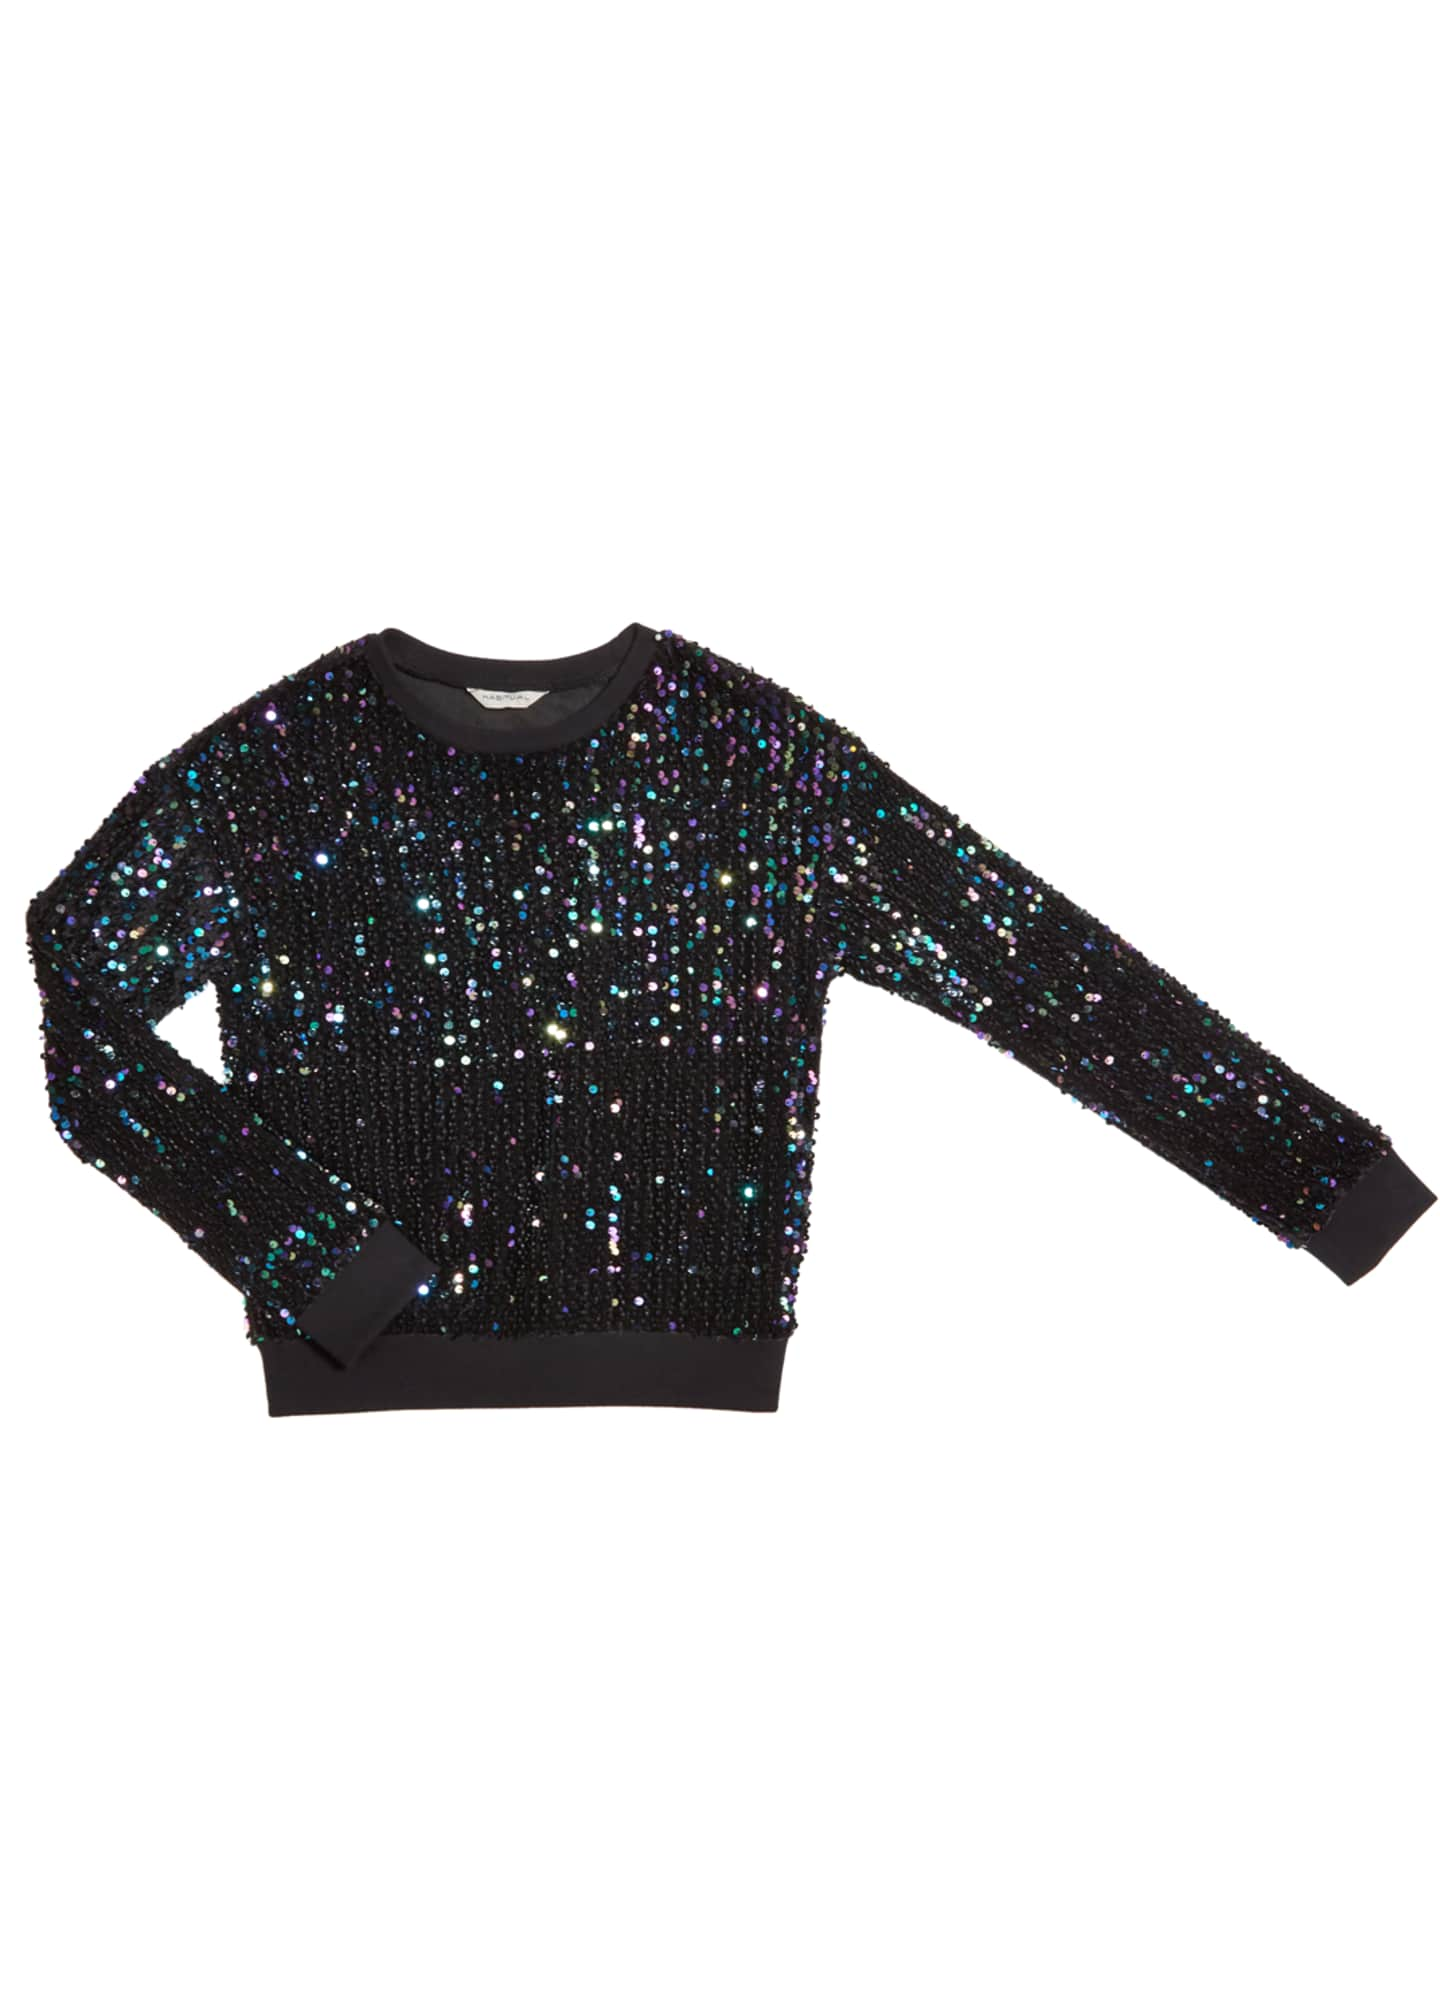 Habitual Ember Multi-Sequins Top, Size 7-14